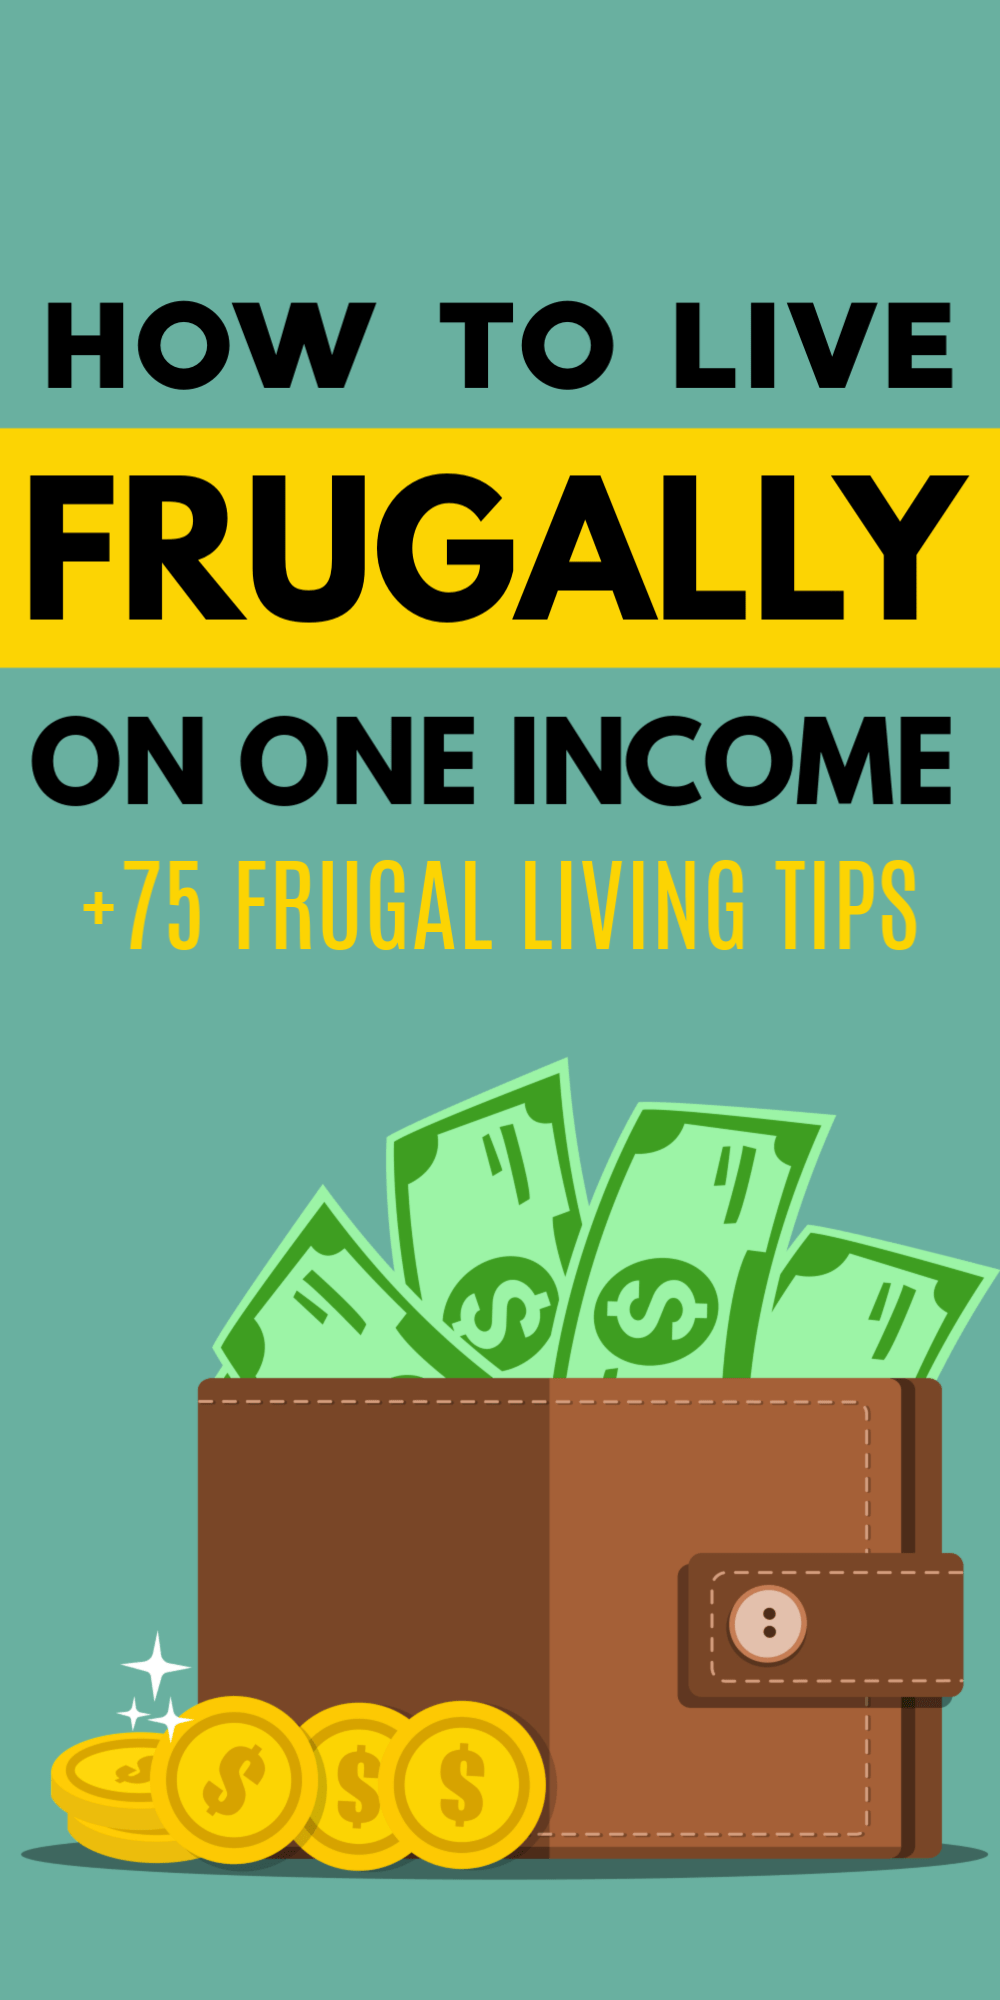 How to Live Frugally on One Income - Not Quite an Adult